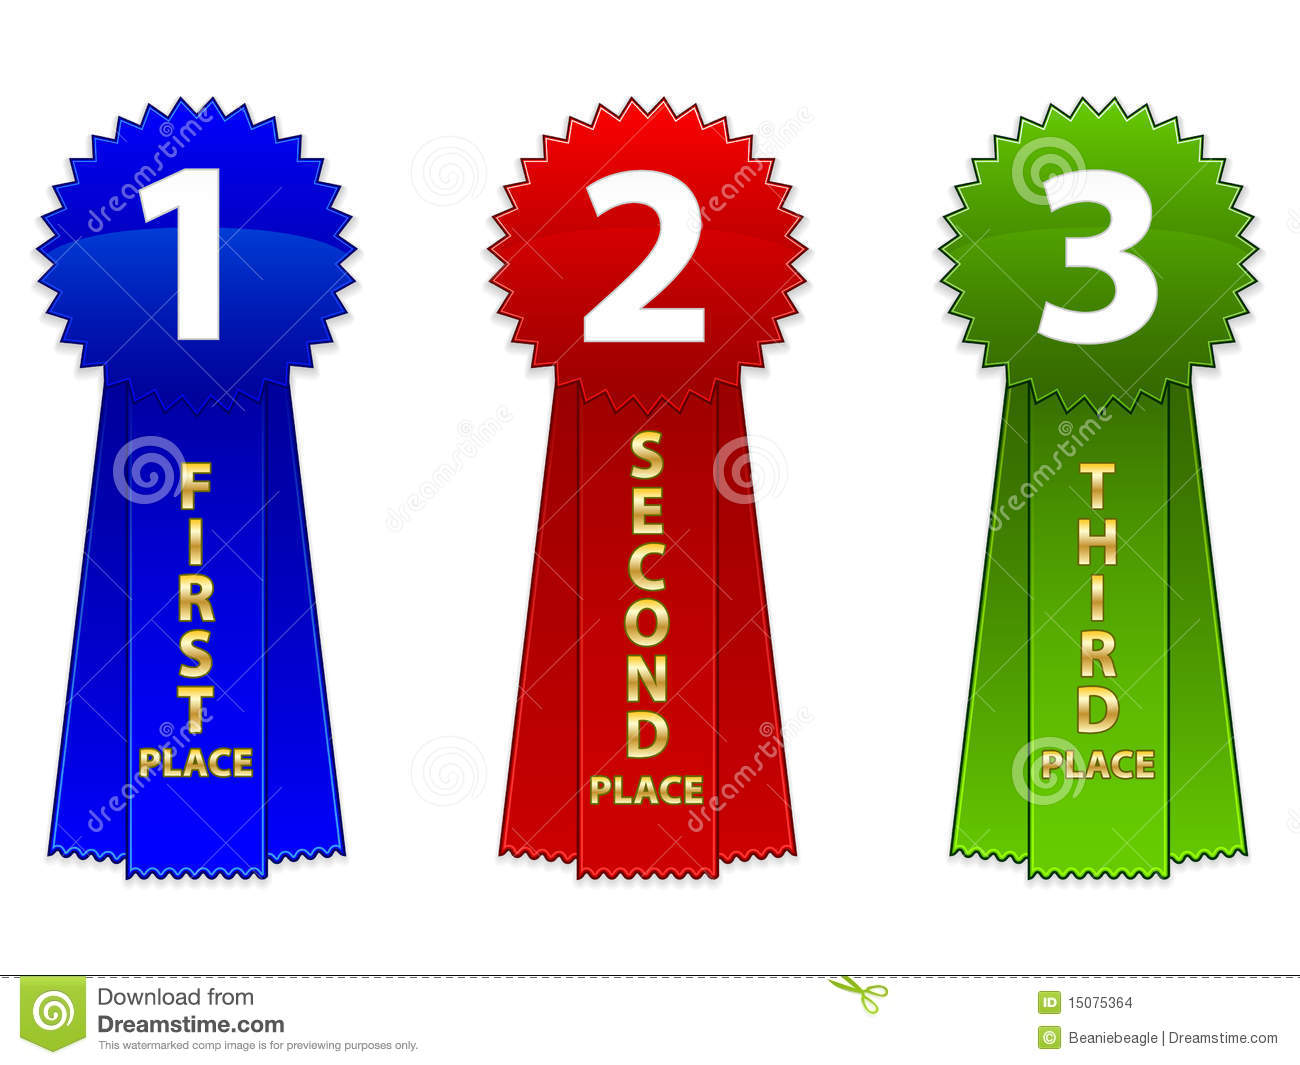 ... of a first, second and third place event ribbons. Available in EPS